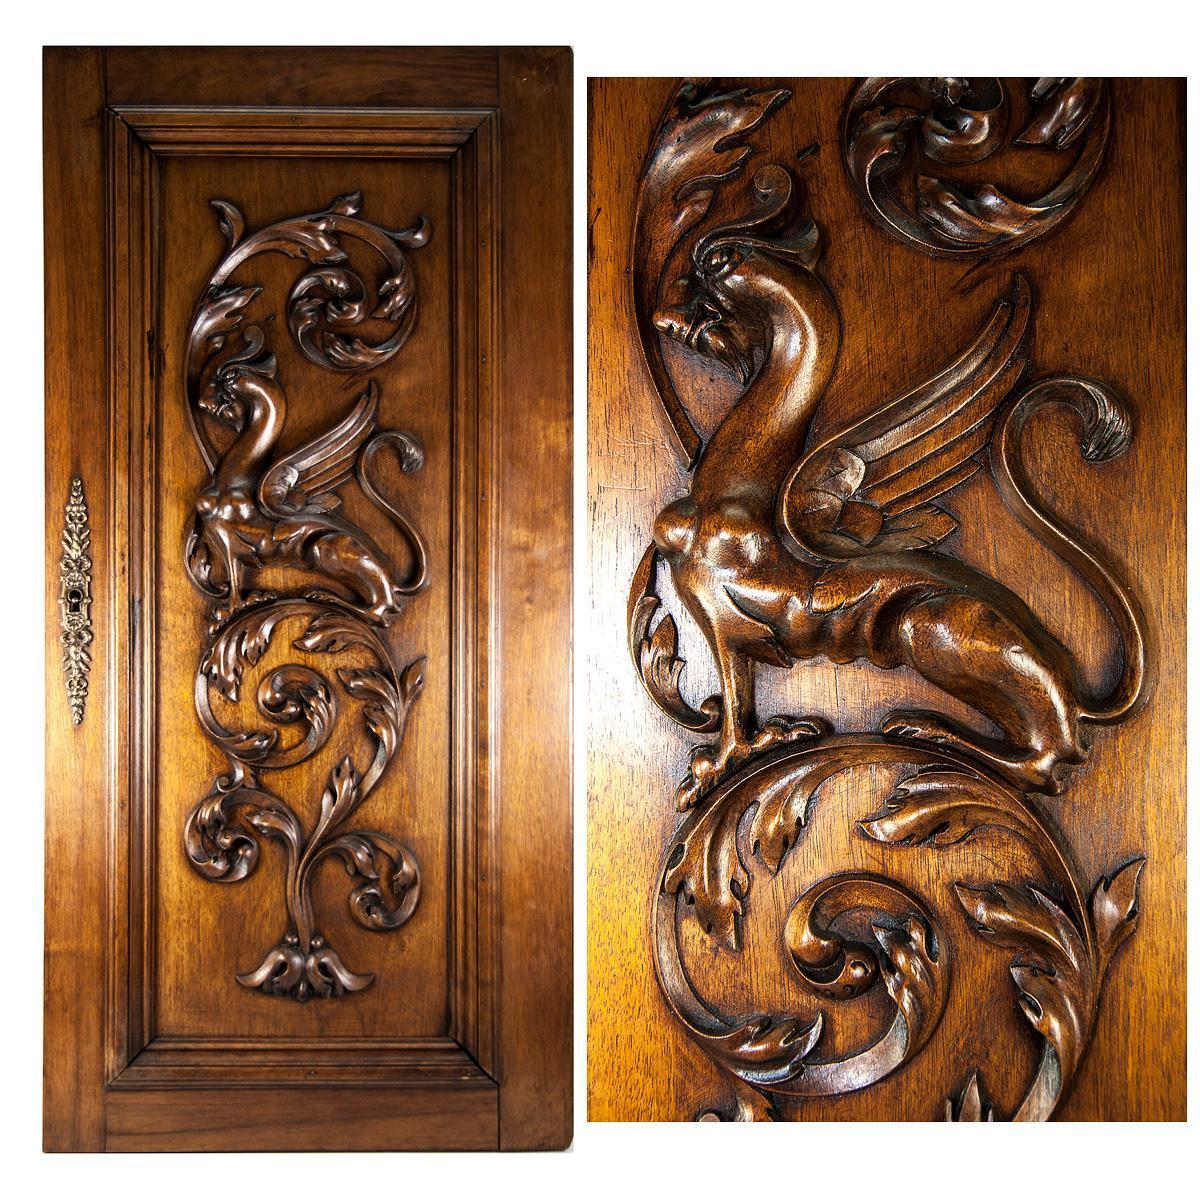 Hand Carved Antique Griffen Cabinet Door Wall Plaque Acanthus From Antiques Uncommon Treasure